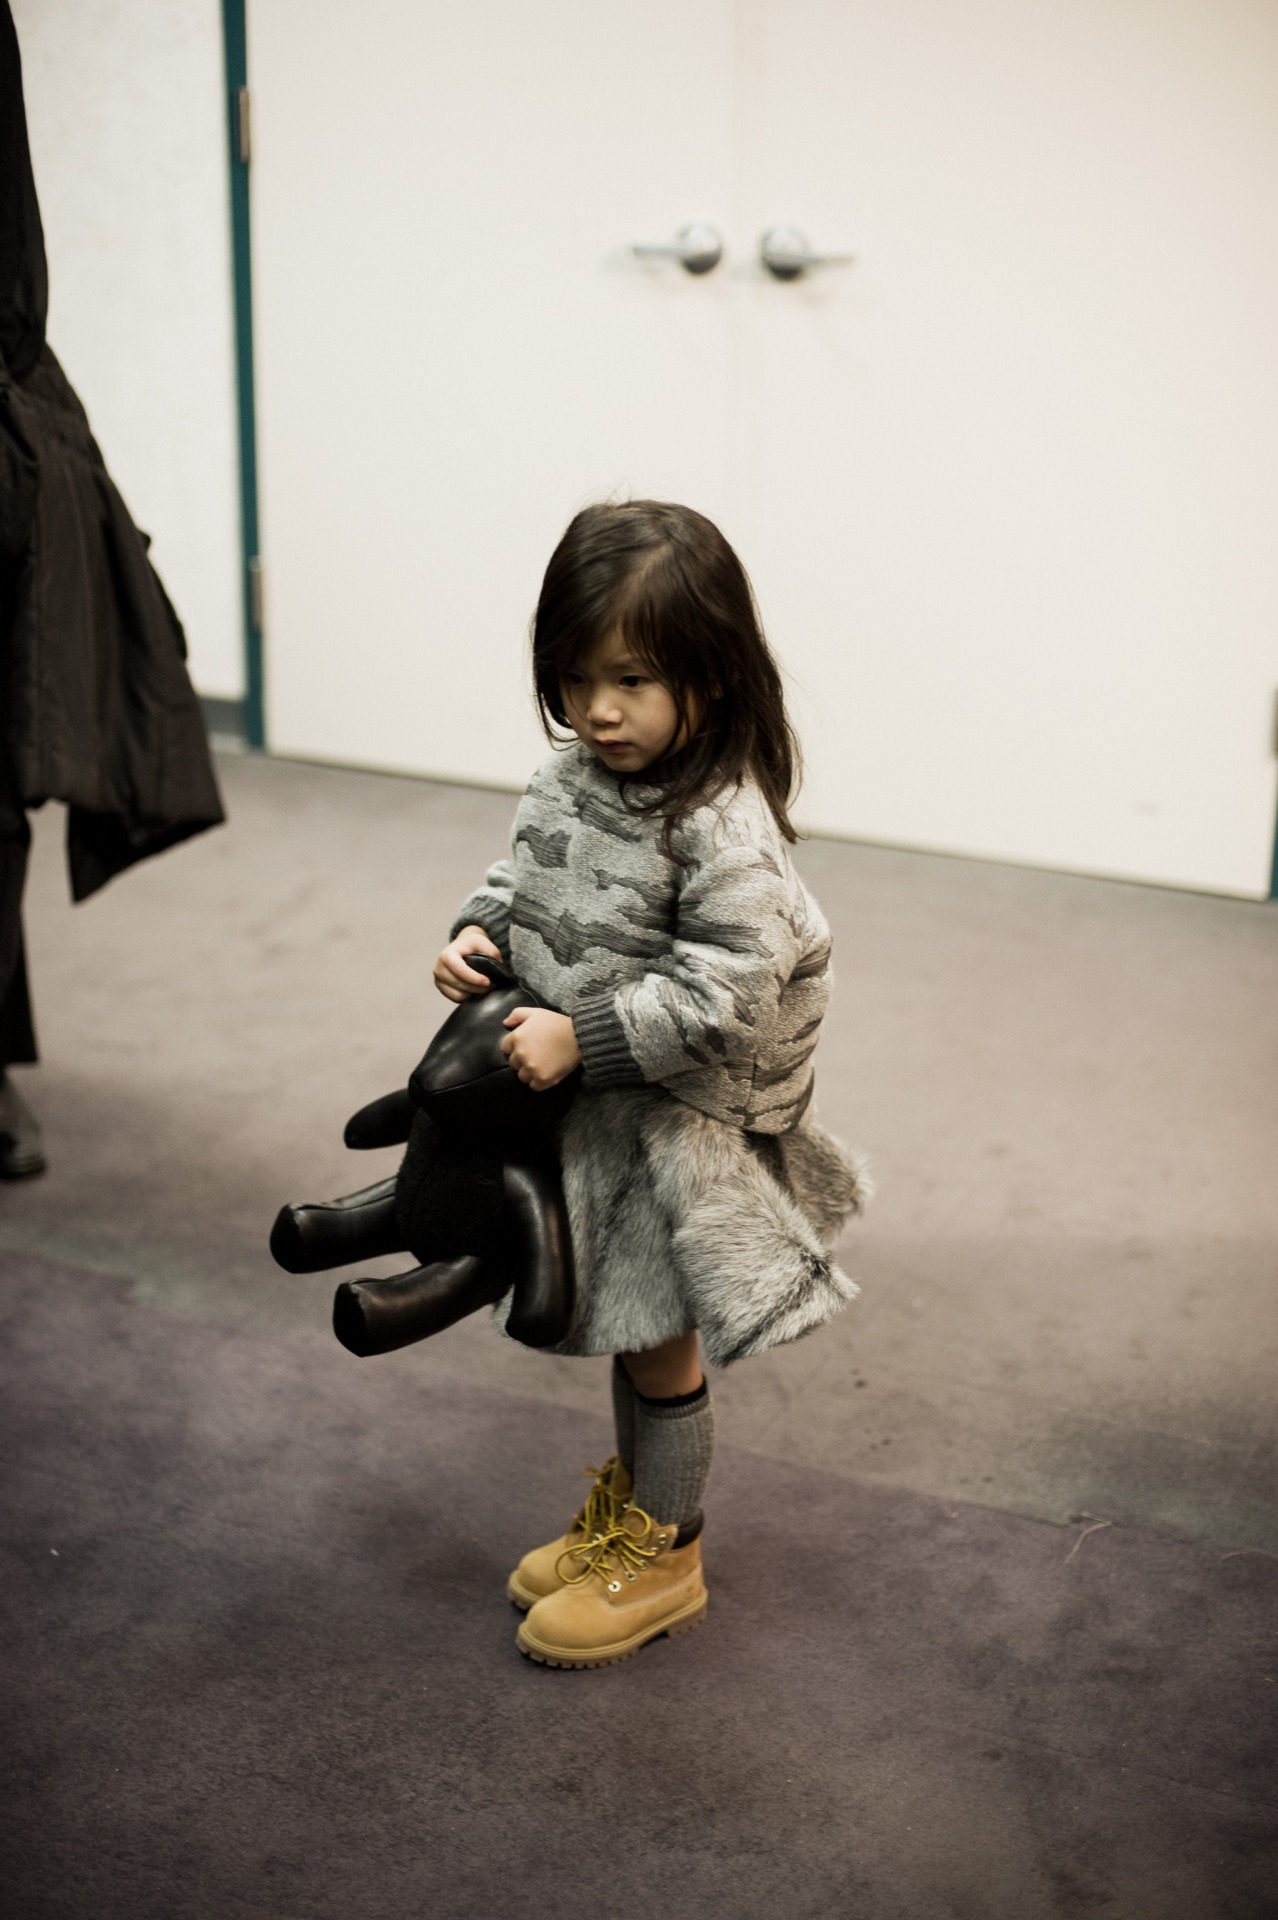 Alexander Wang's niece Aila backstage at Alexander Wang AW13 © Shawn Brackbill for Interview http://www.interviewmagazine.com/fashion/alexander-wang-fw-2013/